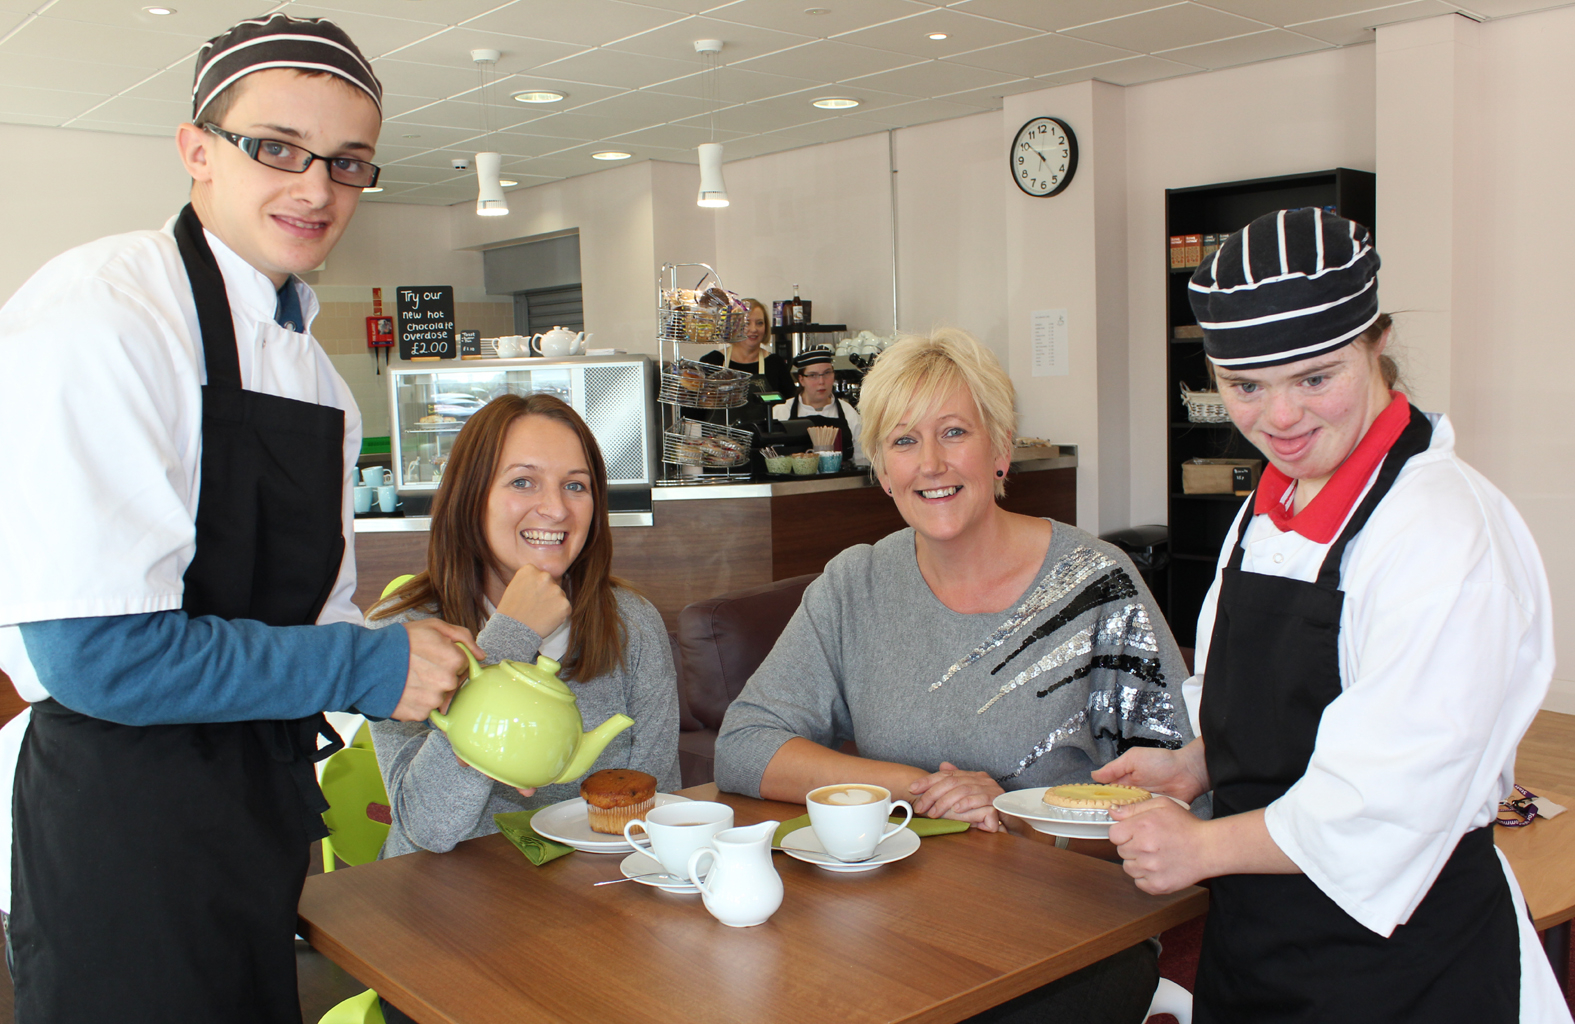 Students with learning difficulties gain first-hand work experience thanks to their own innovative community café.